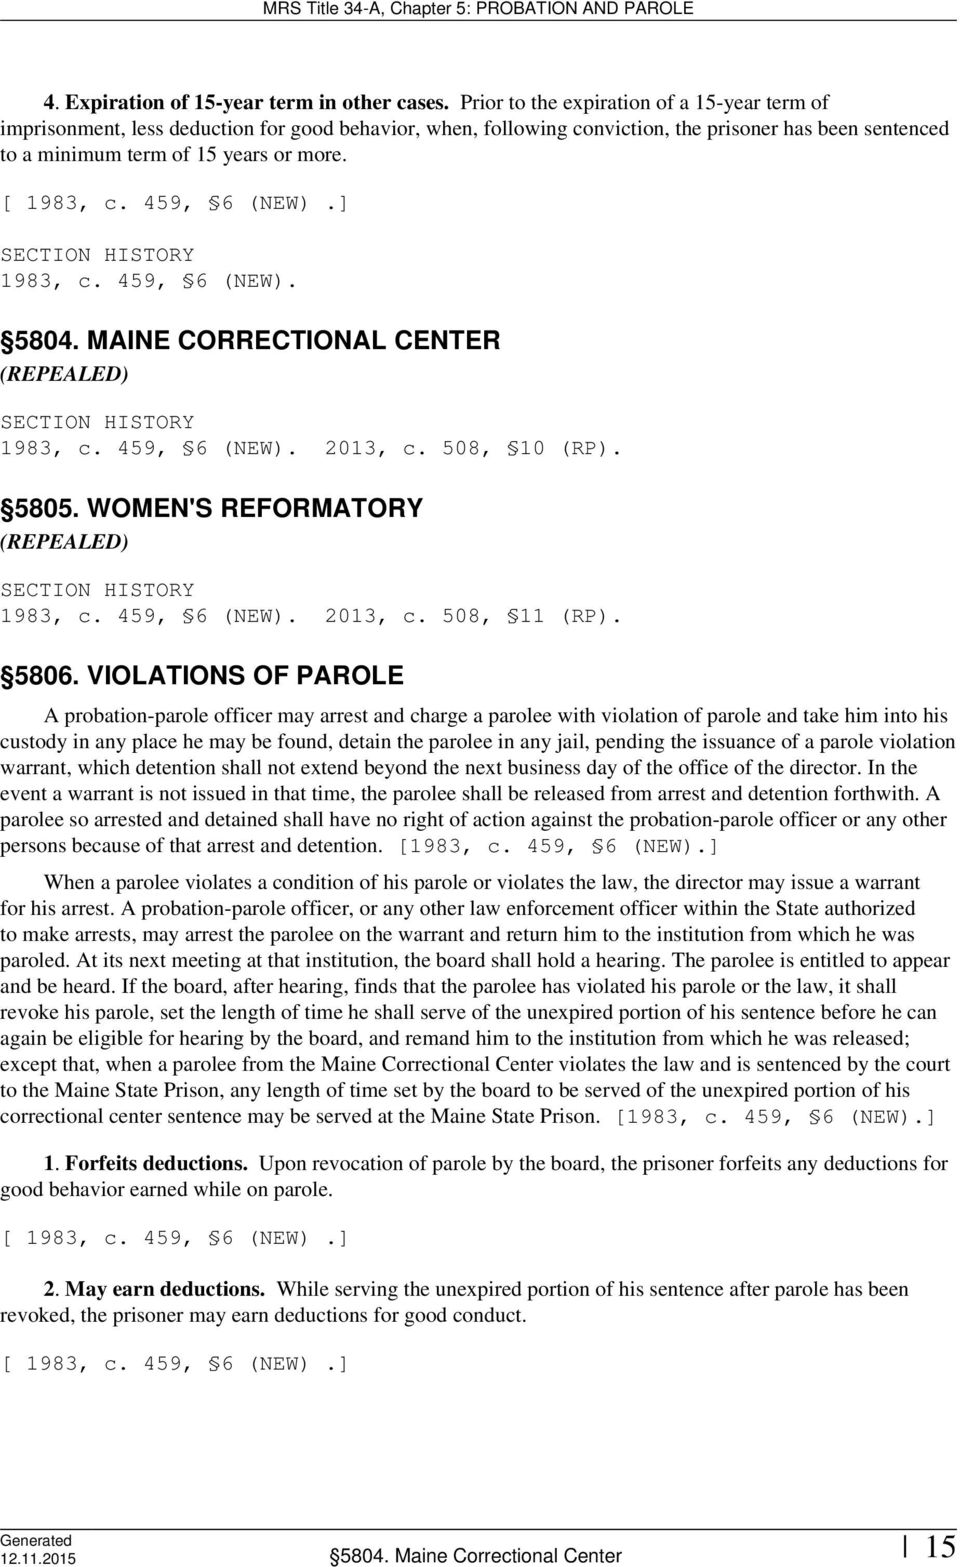 MAINE CORRECTIONAL CENTER (REPEALED) 2013, c. 508, 10 (RP). 5805. WOMEN'S REFORMATORY (REPEALED) 2013, c. 508, 11 (RP). 5806.